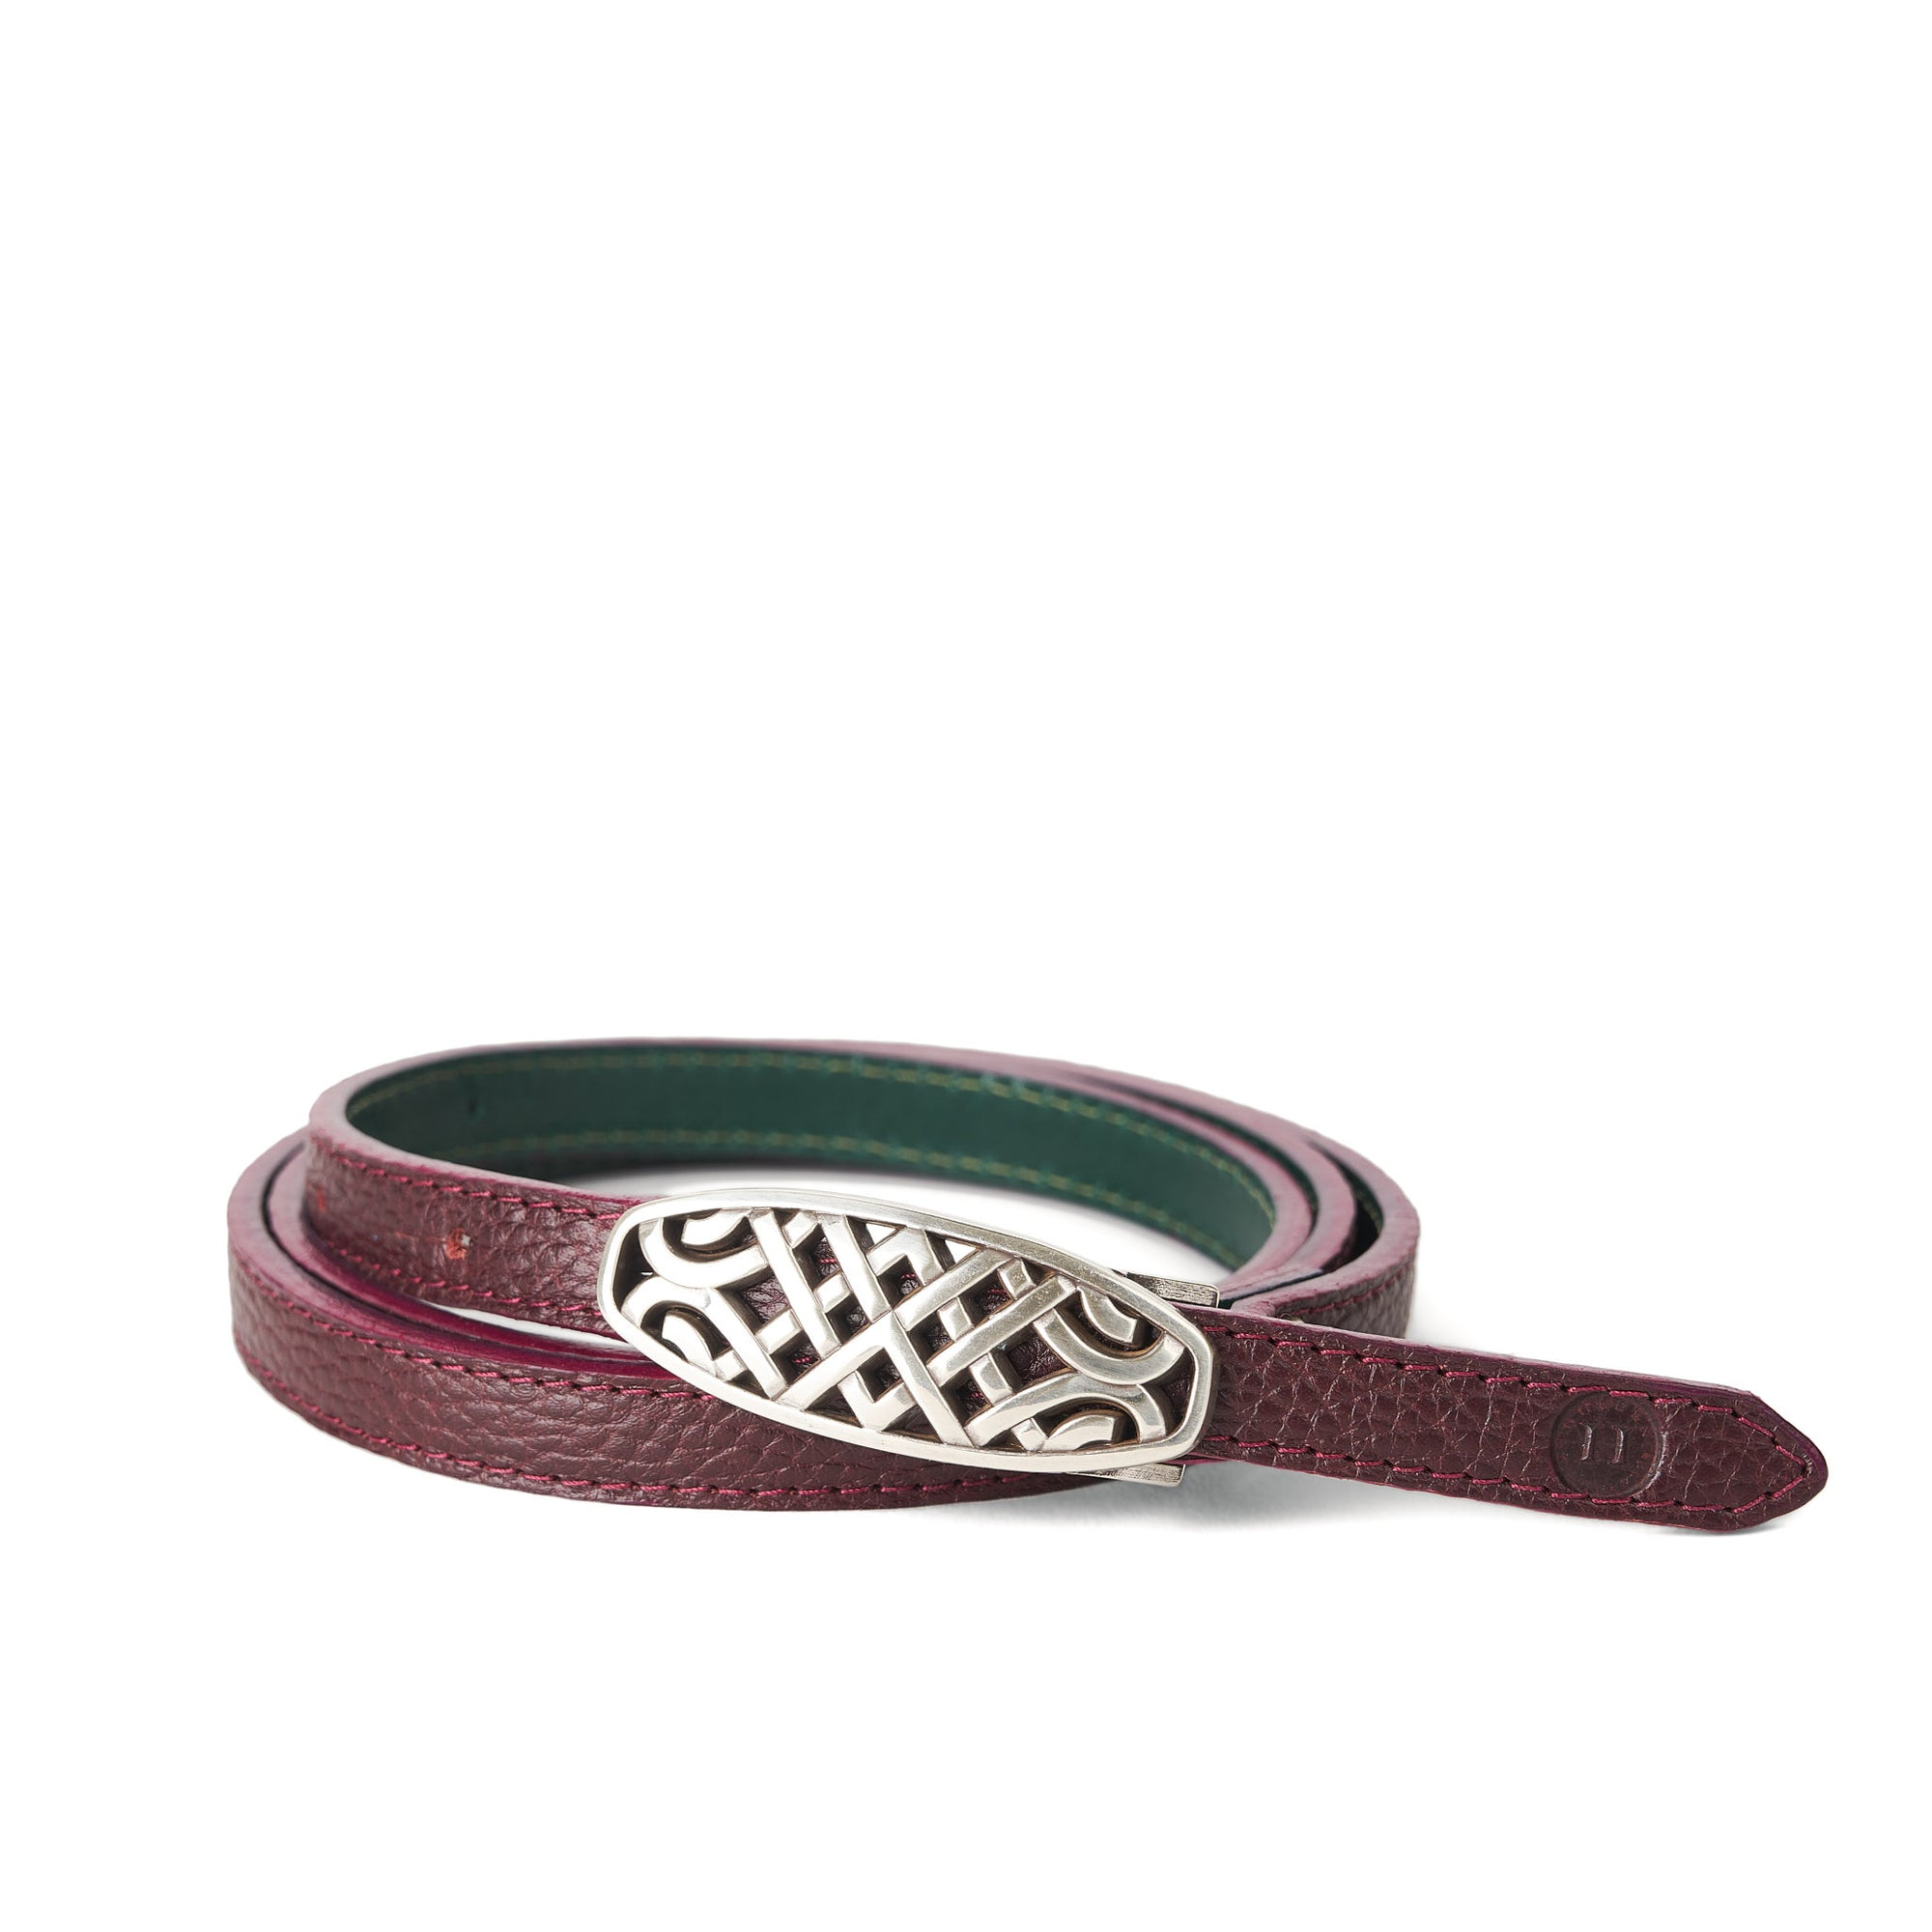 Holden Ríasc Celtic Belt - Burgundy